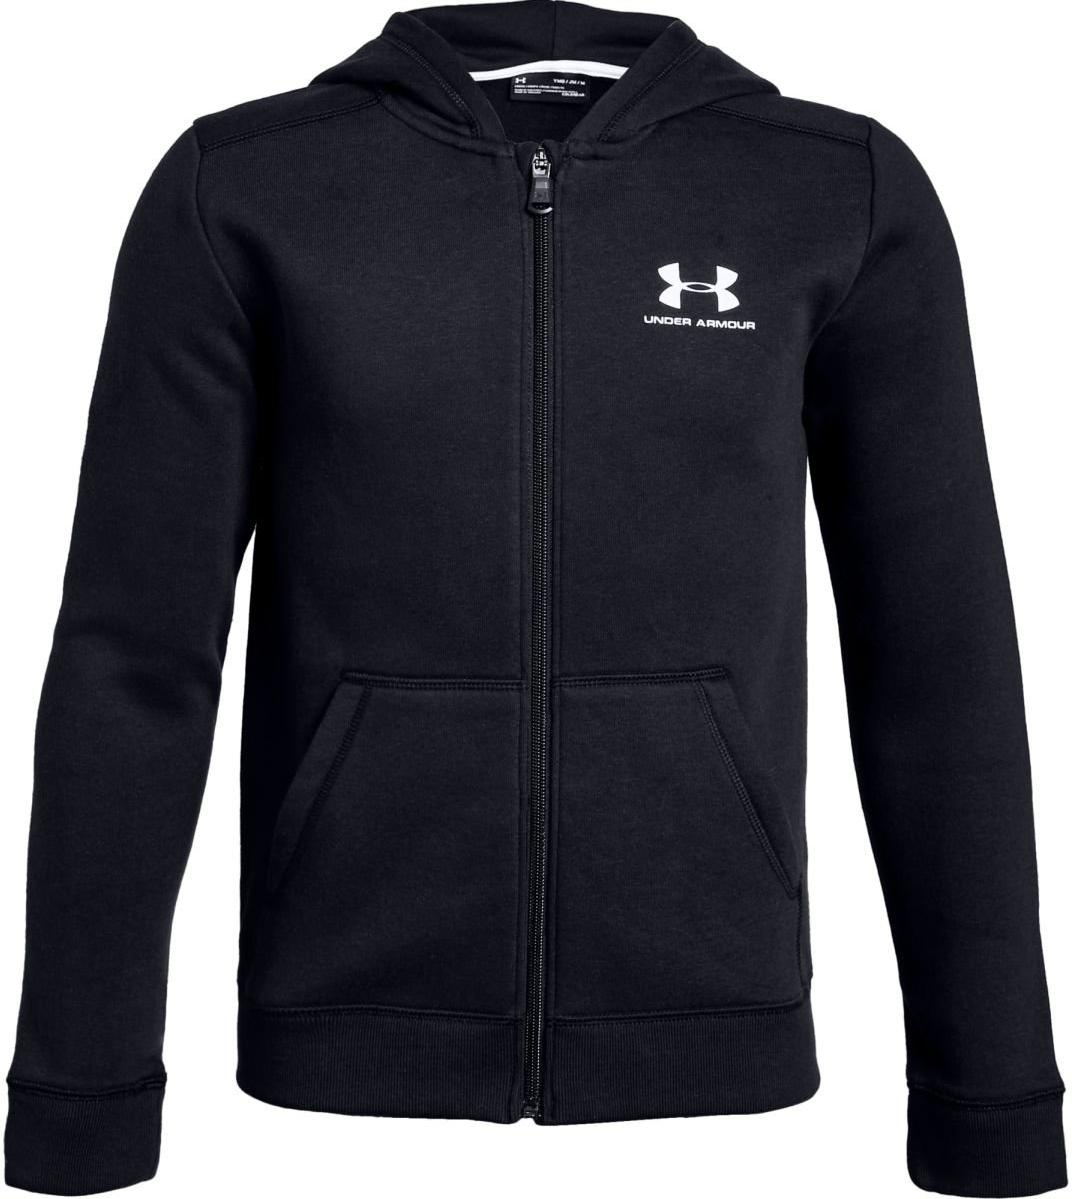 Hooded sweatshirt Under Armour UA Cotton Fleece Full Zip